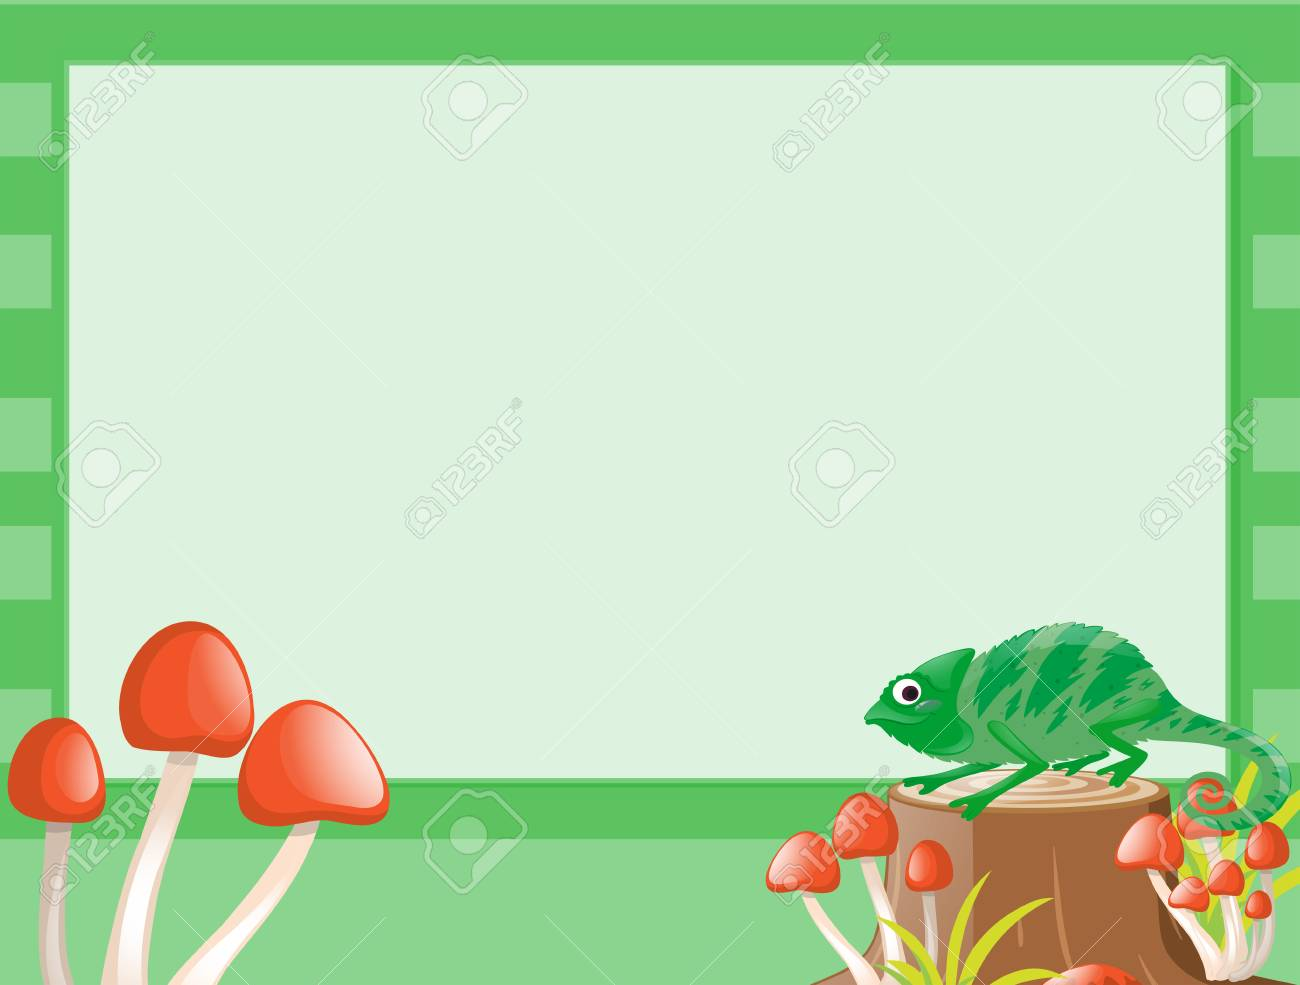 Border Template With Lizard On Log Illustration Stock Vector